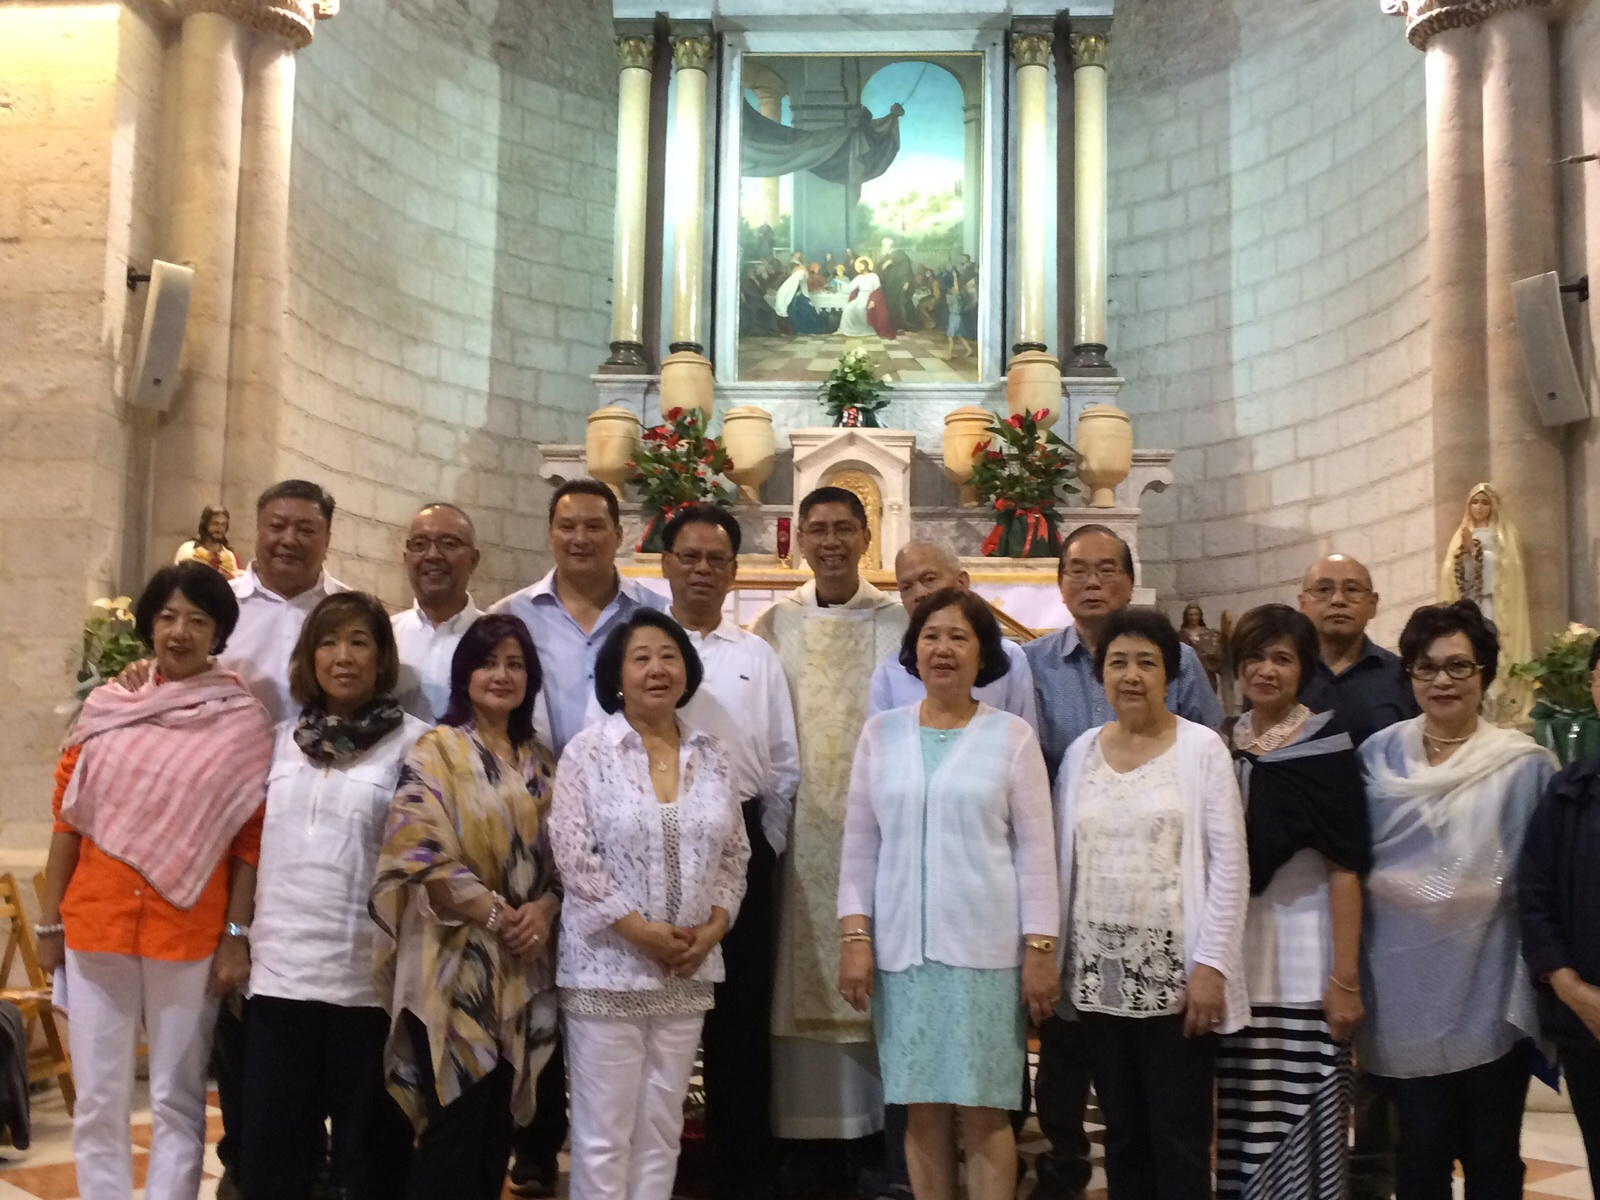 EO group celebrating renewal of wedding vows in Cana on Oct 28.jpeg